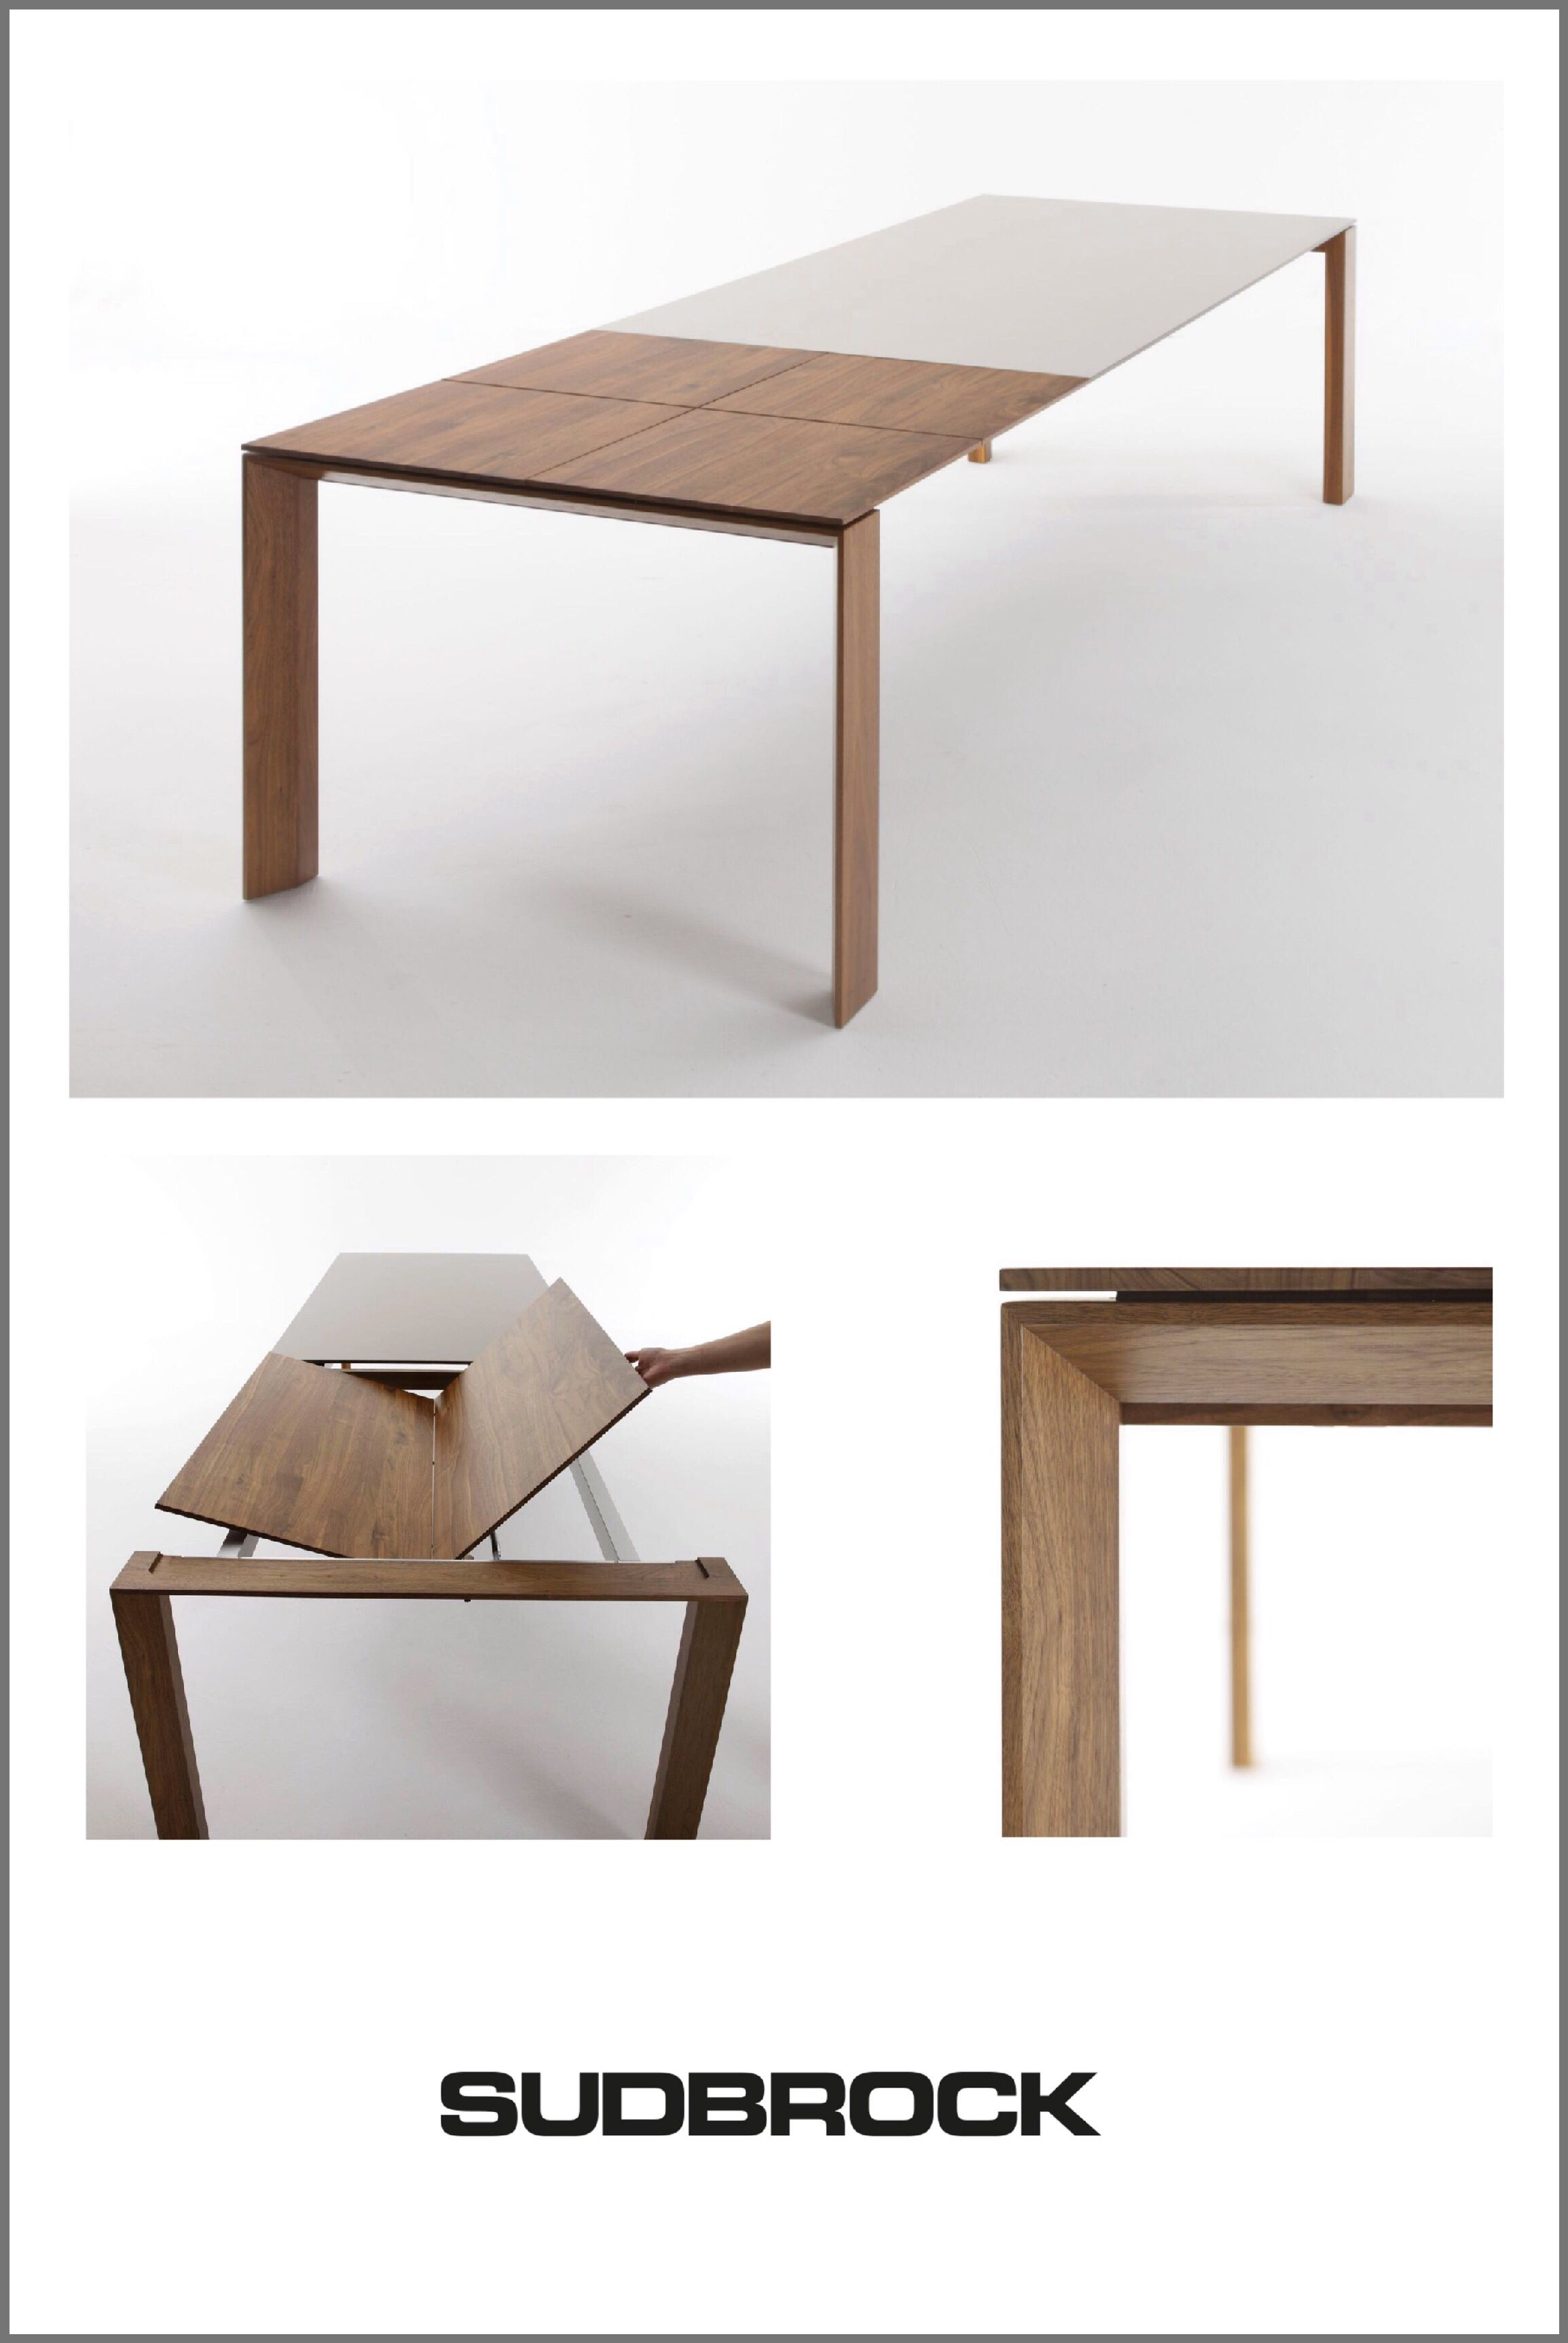 Extendable Dining Table Pondus By Sudbrock Space Saving Dining Table Extendable Dining Table Furniture